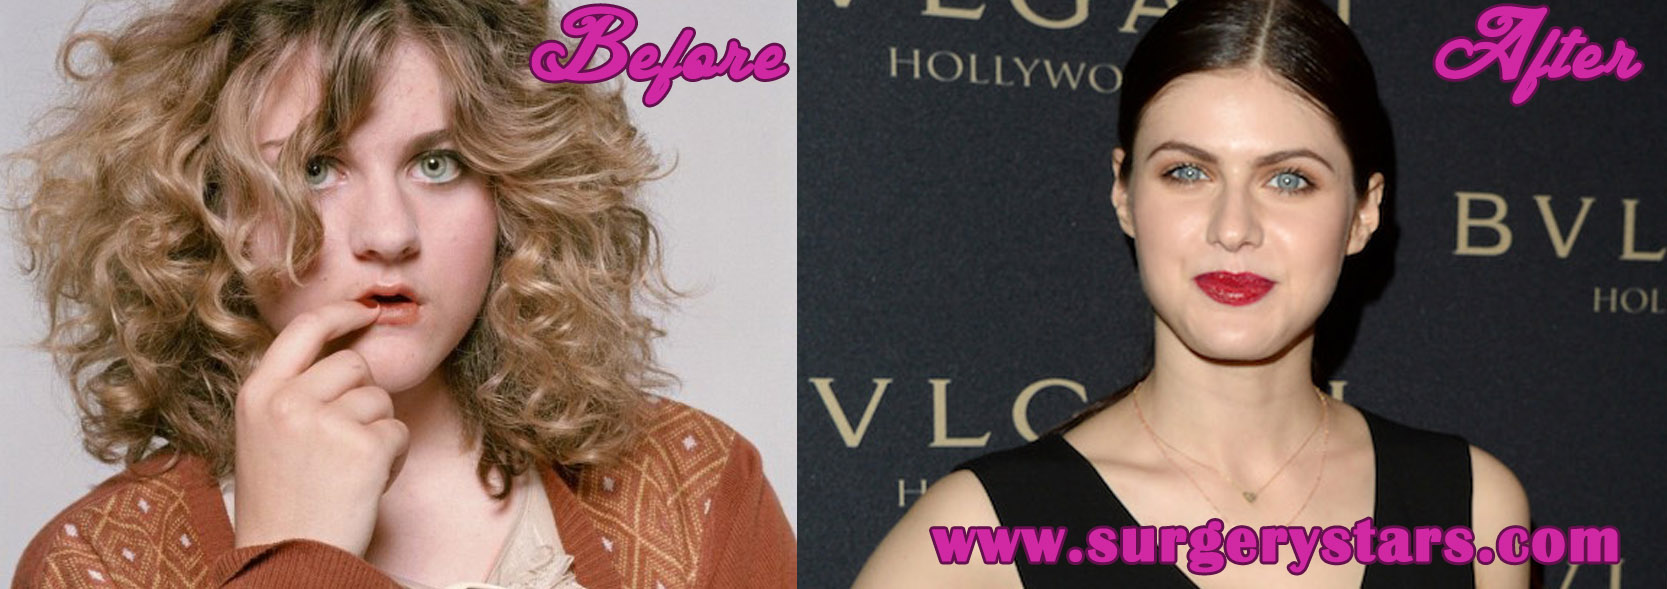 Frances Bean Cobain Weight Loss Before and After Photos